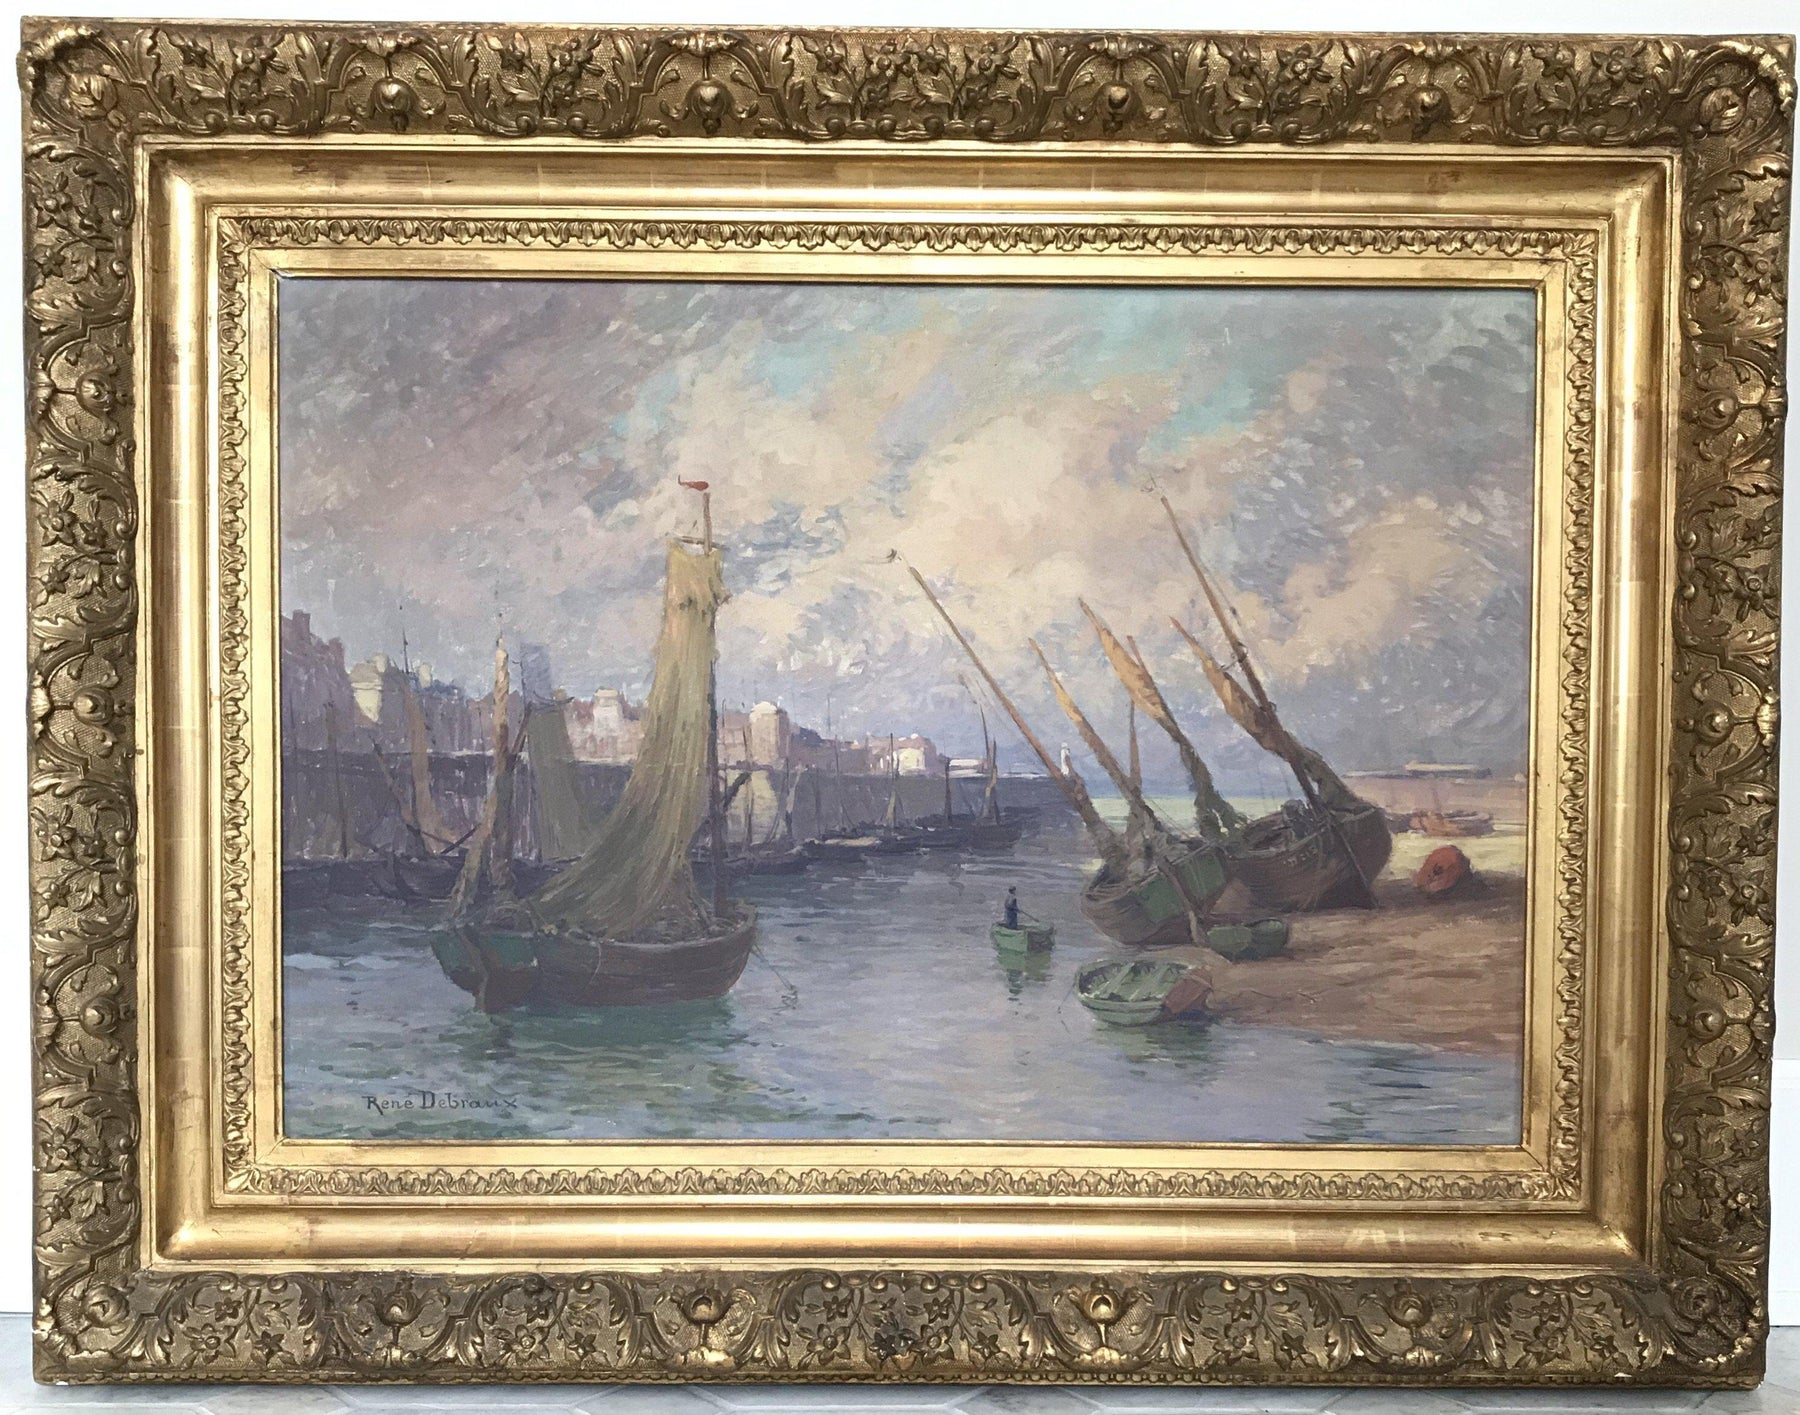 Original French 19th/Early 20th Century Oil Painting: Nautical Schooners and French Seaside by Rene Debraux (1868-1938)